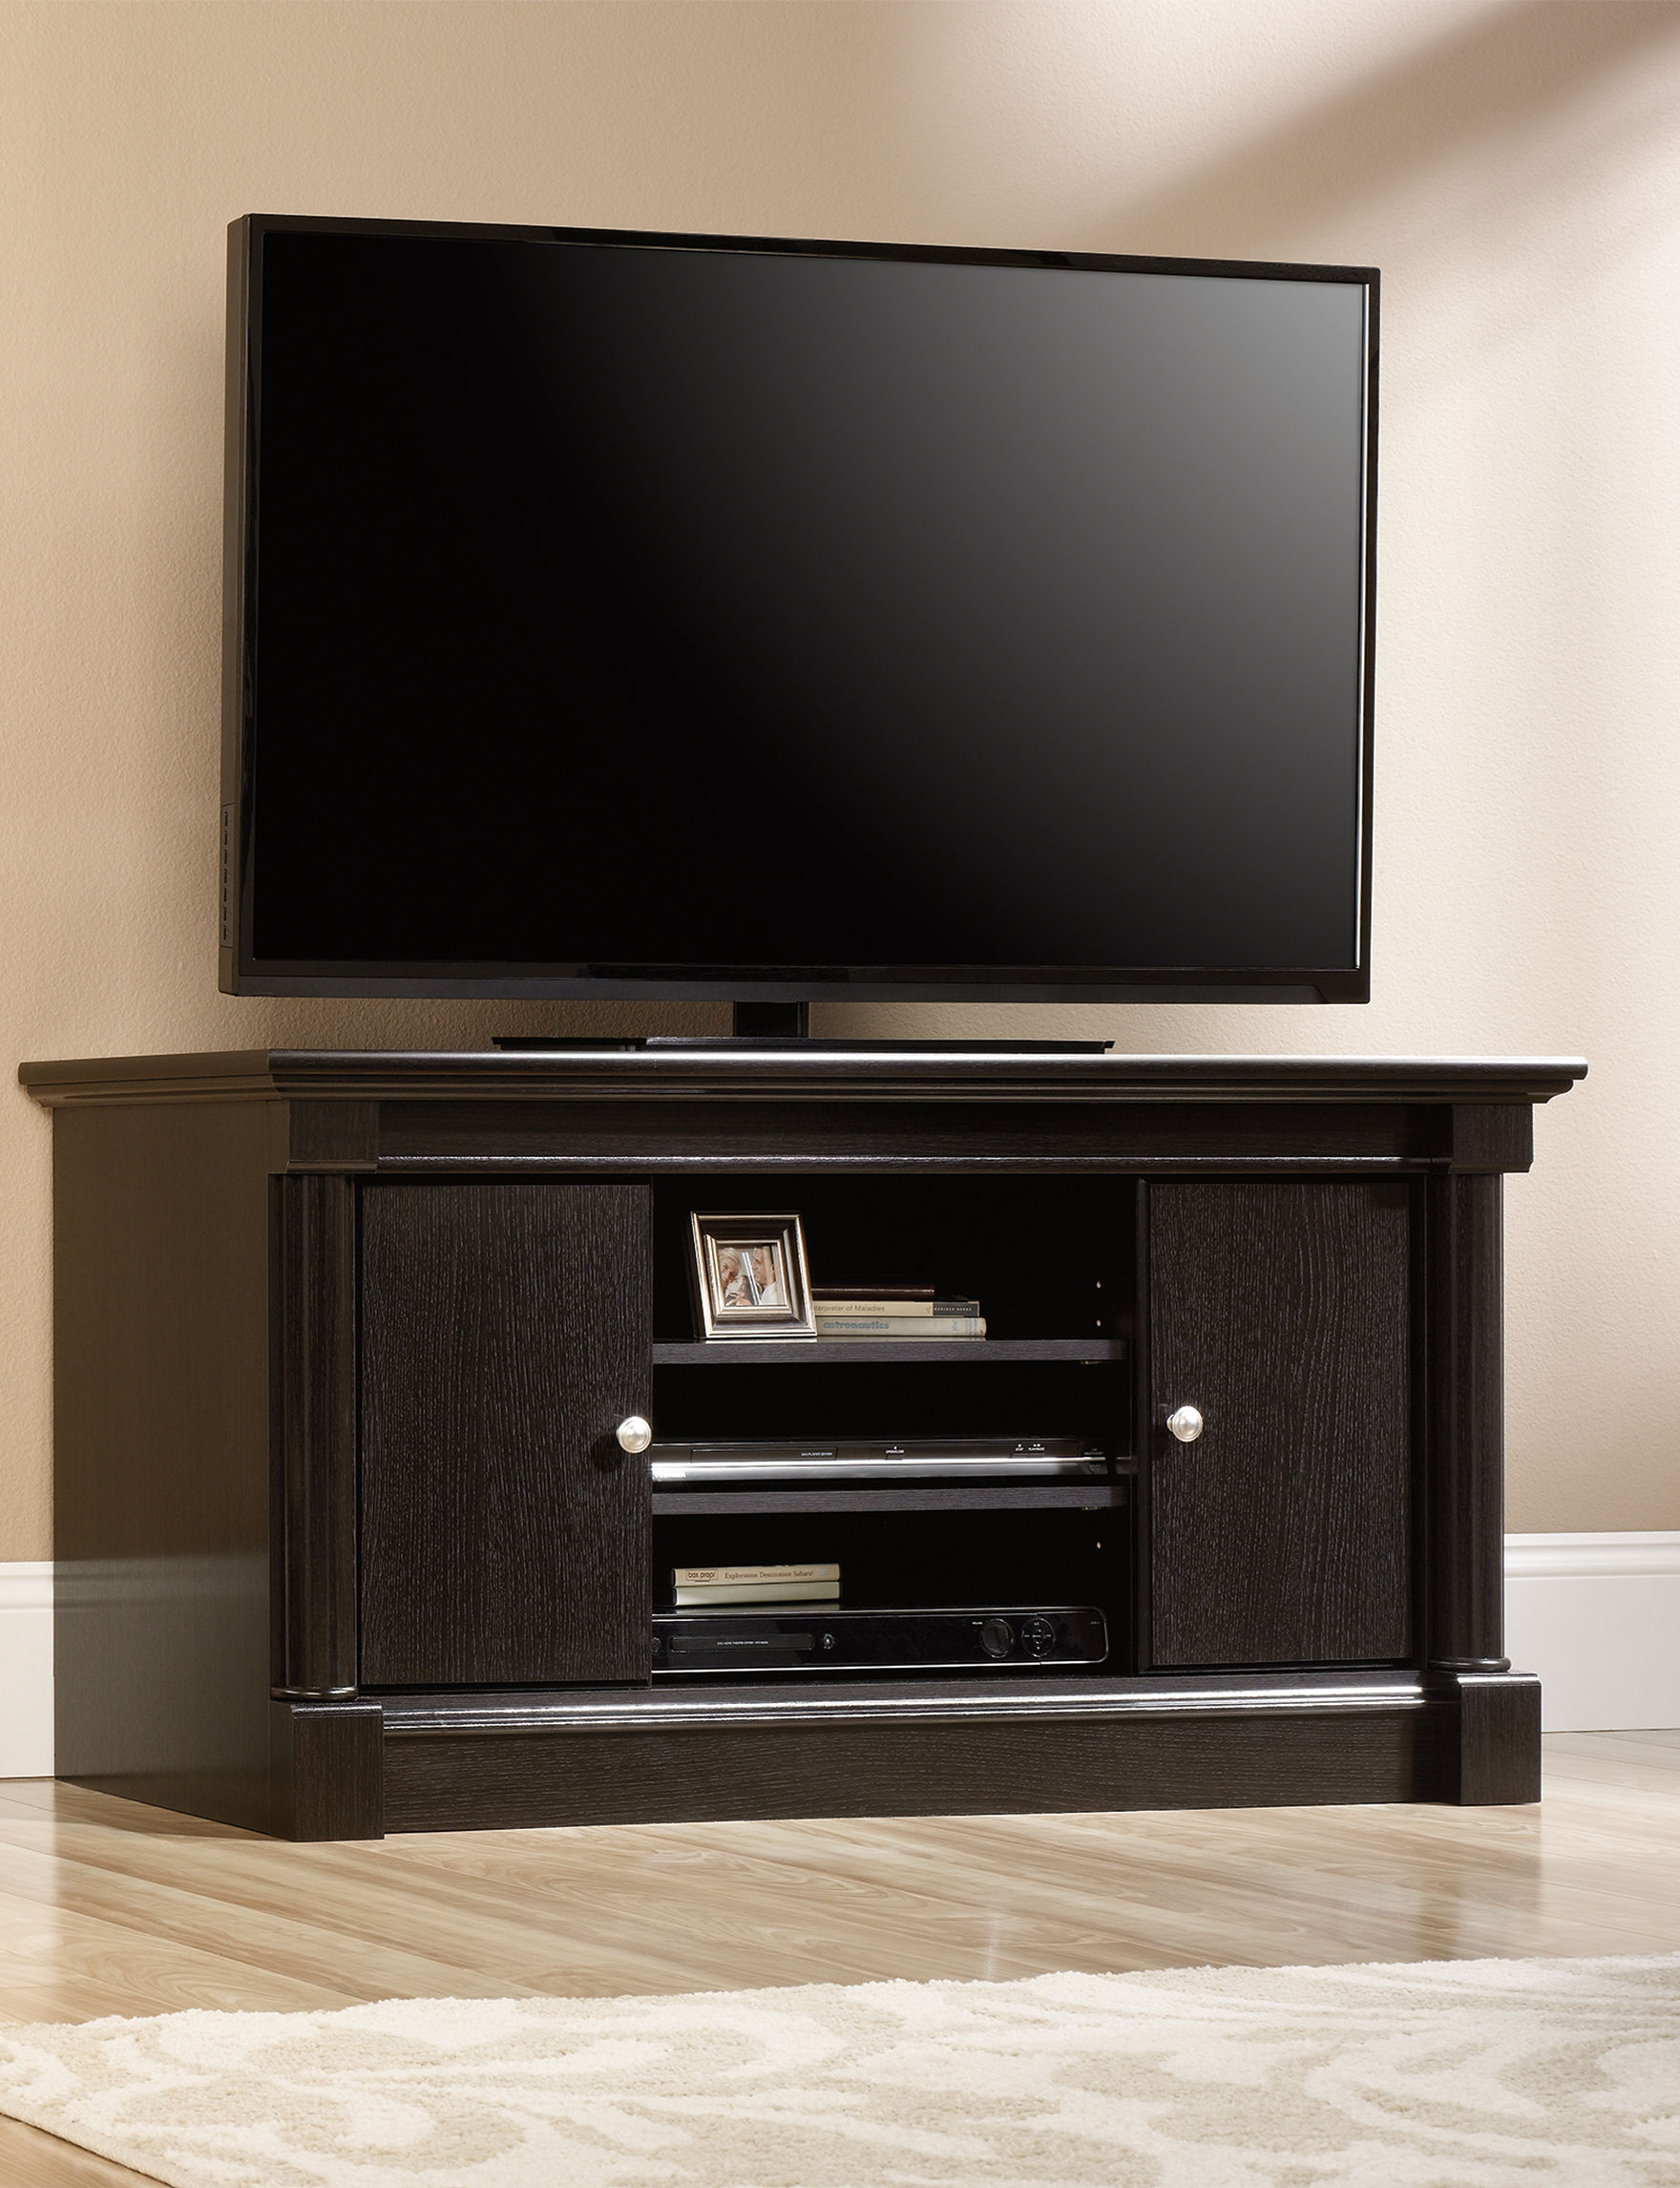 Sauder Espresso TV Stands & Entertainment Centers Living Room Furniture